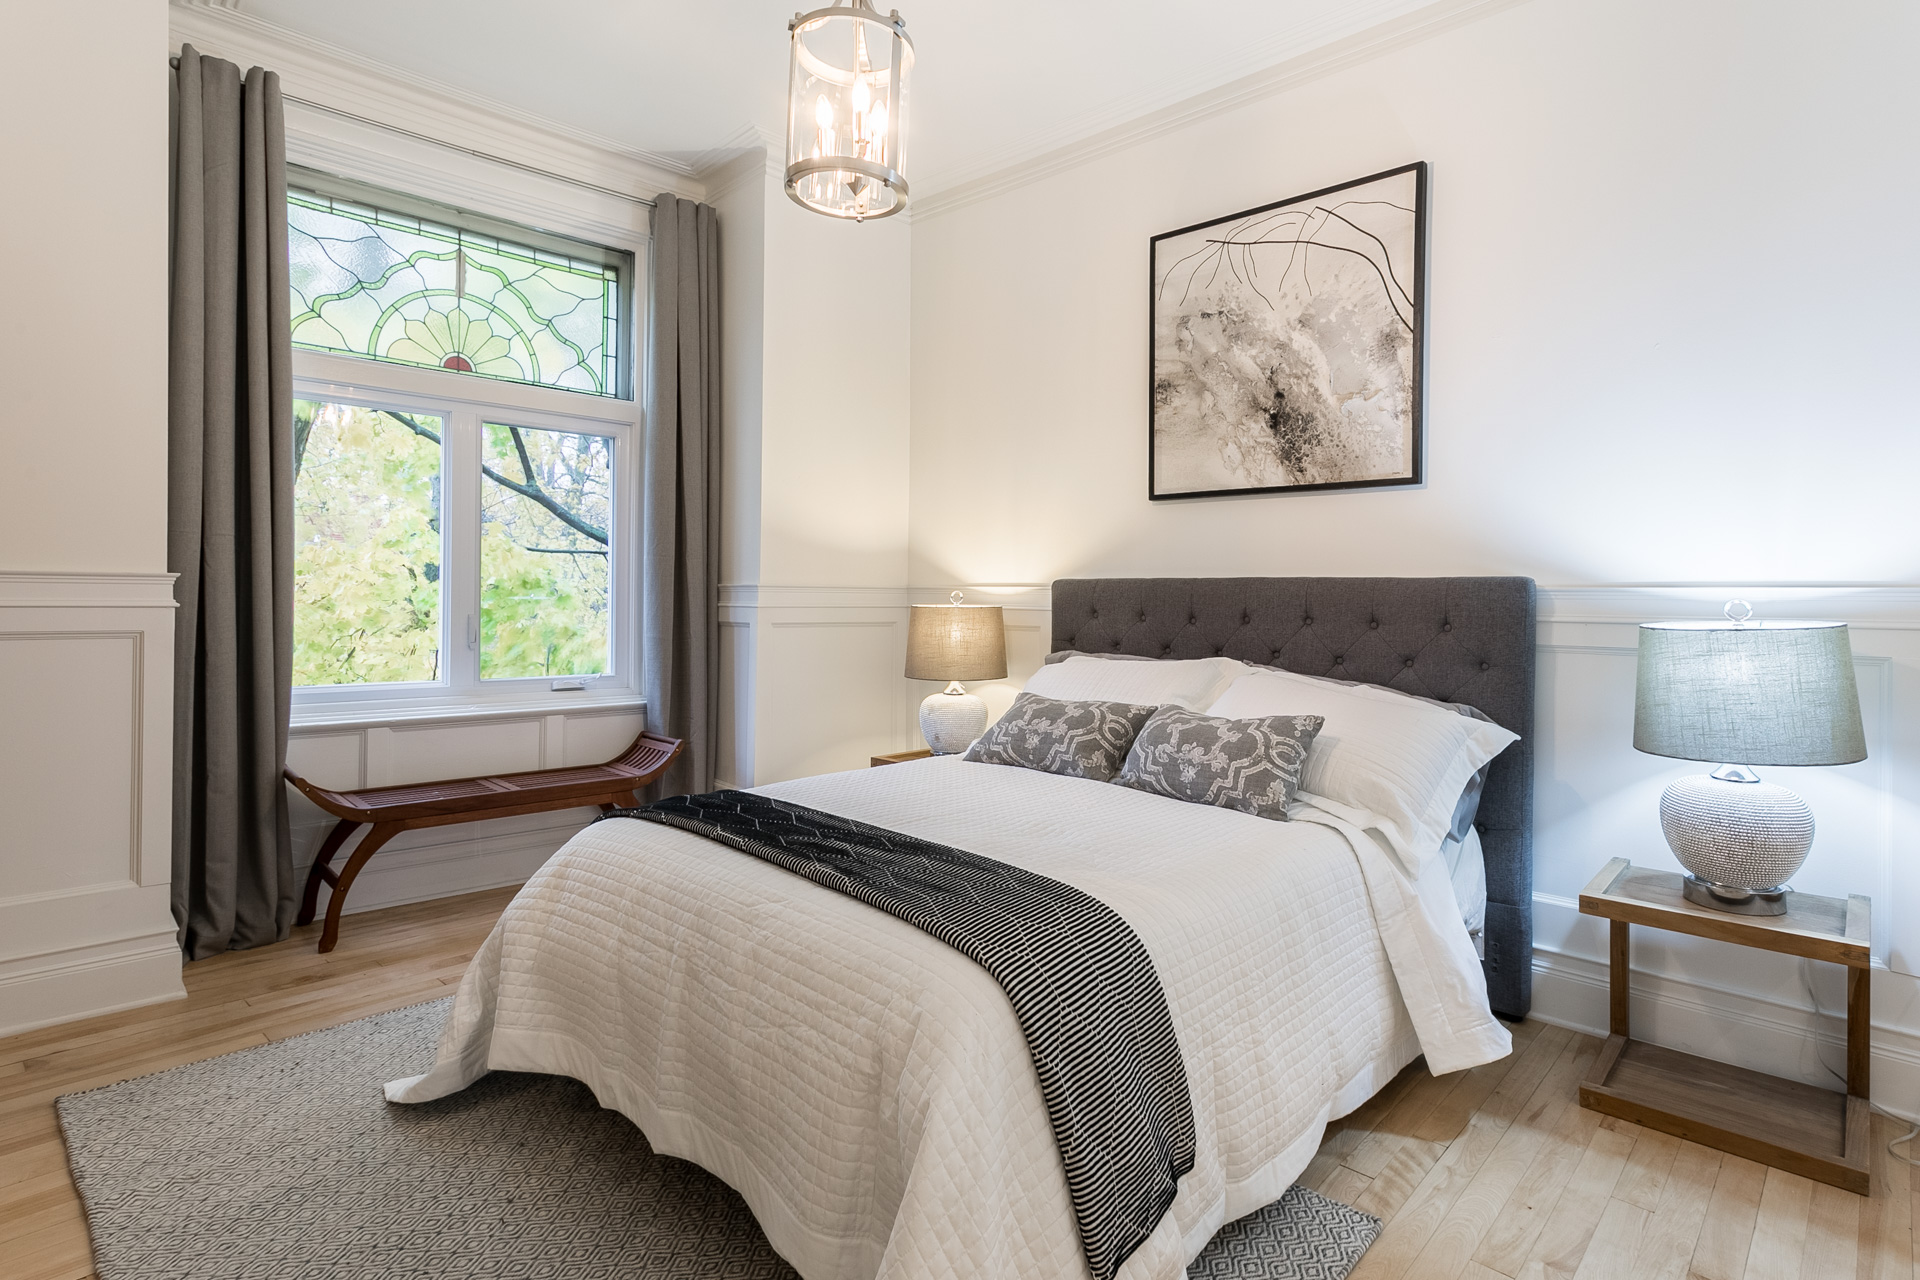 immophoto - 391 wiseman - outremont - catherine oligny - SD - 014.JPG